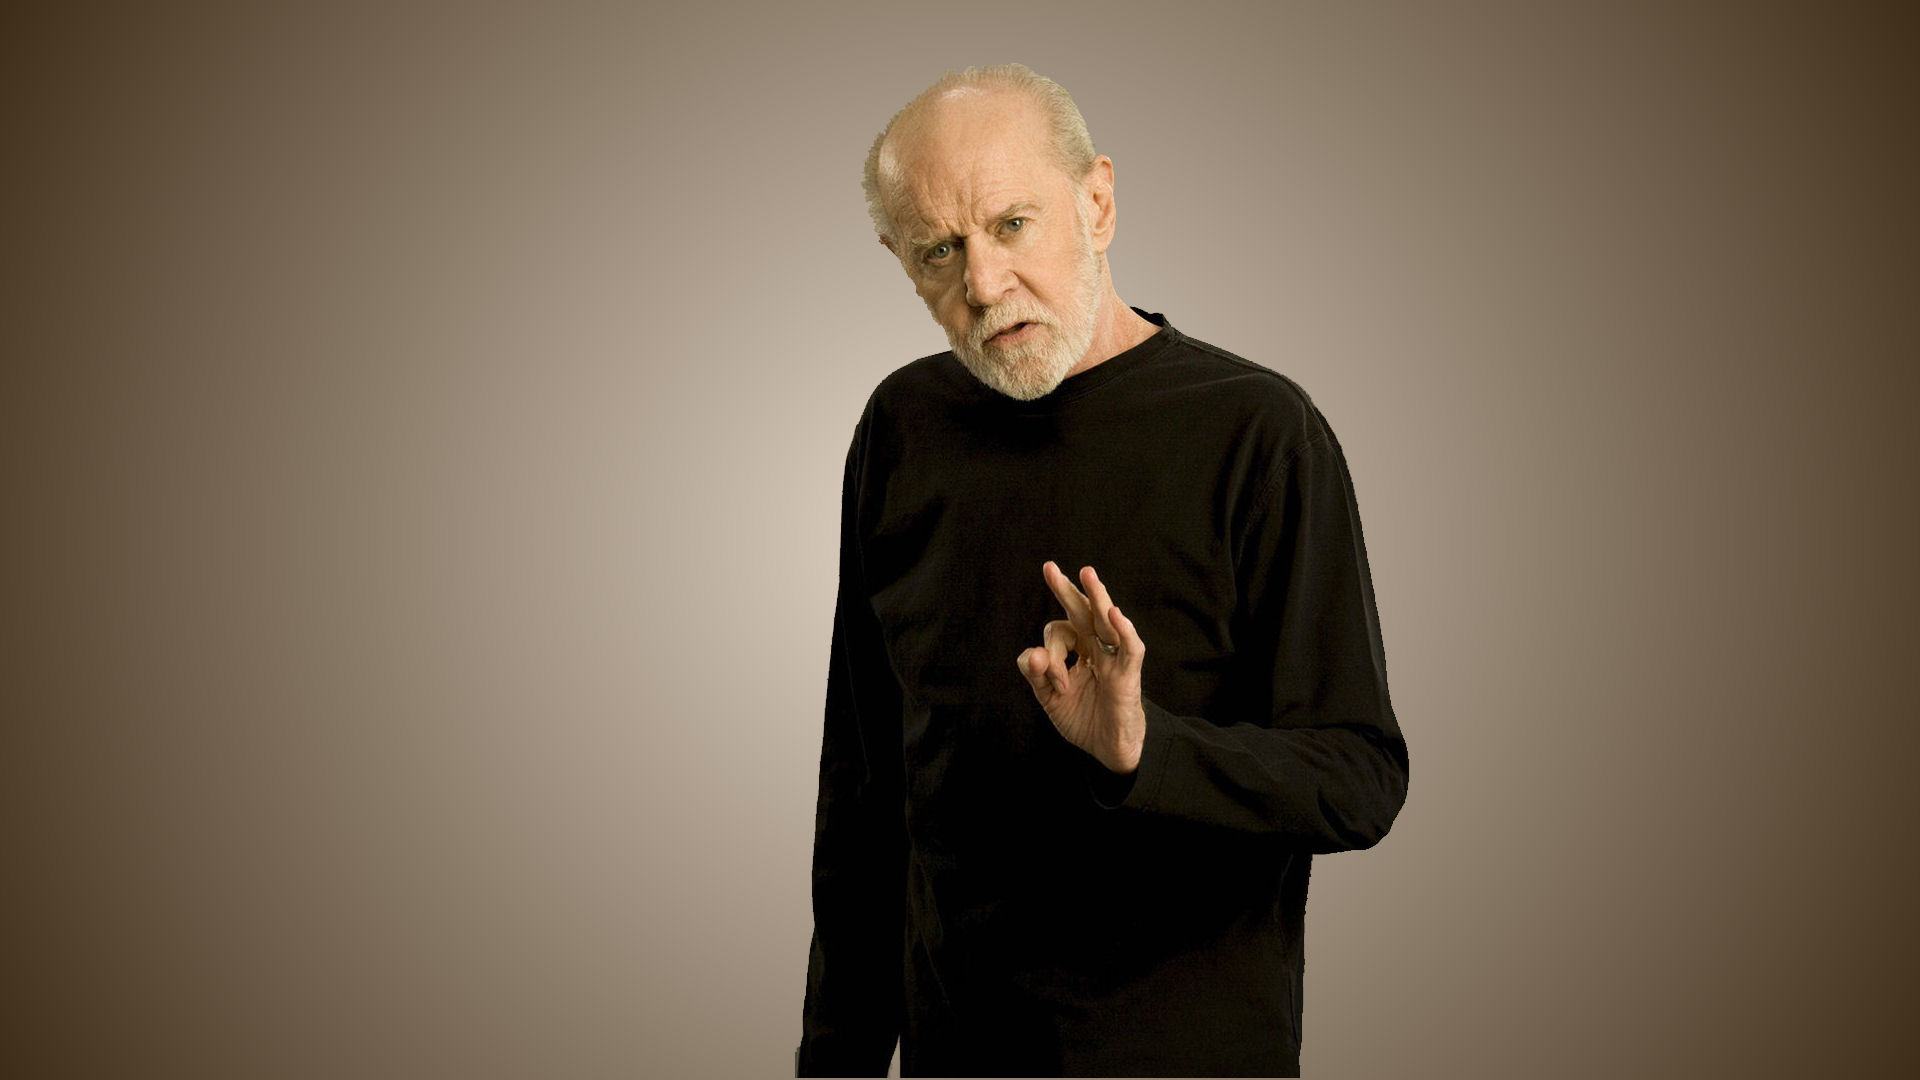 George Carlin concert review.